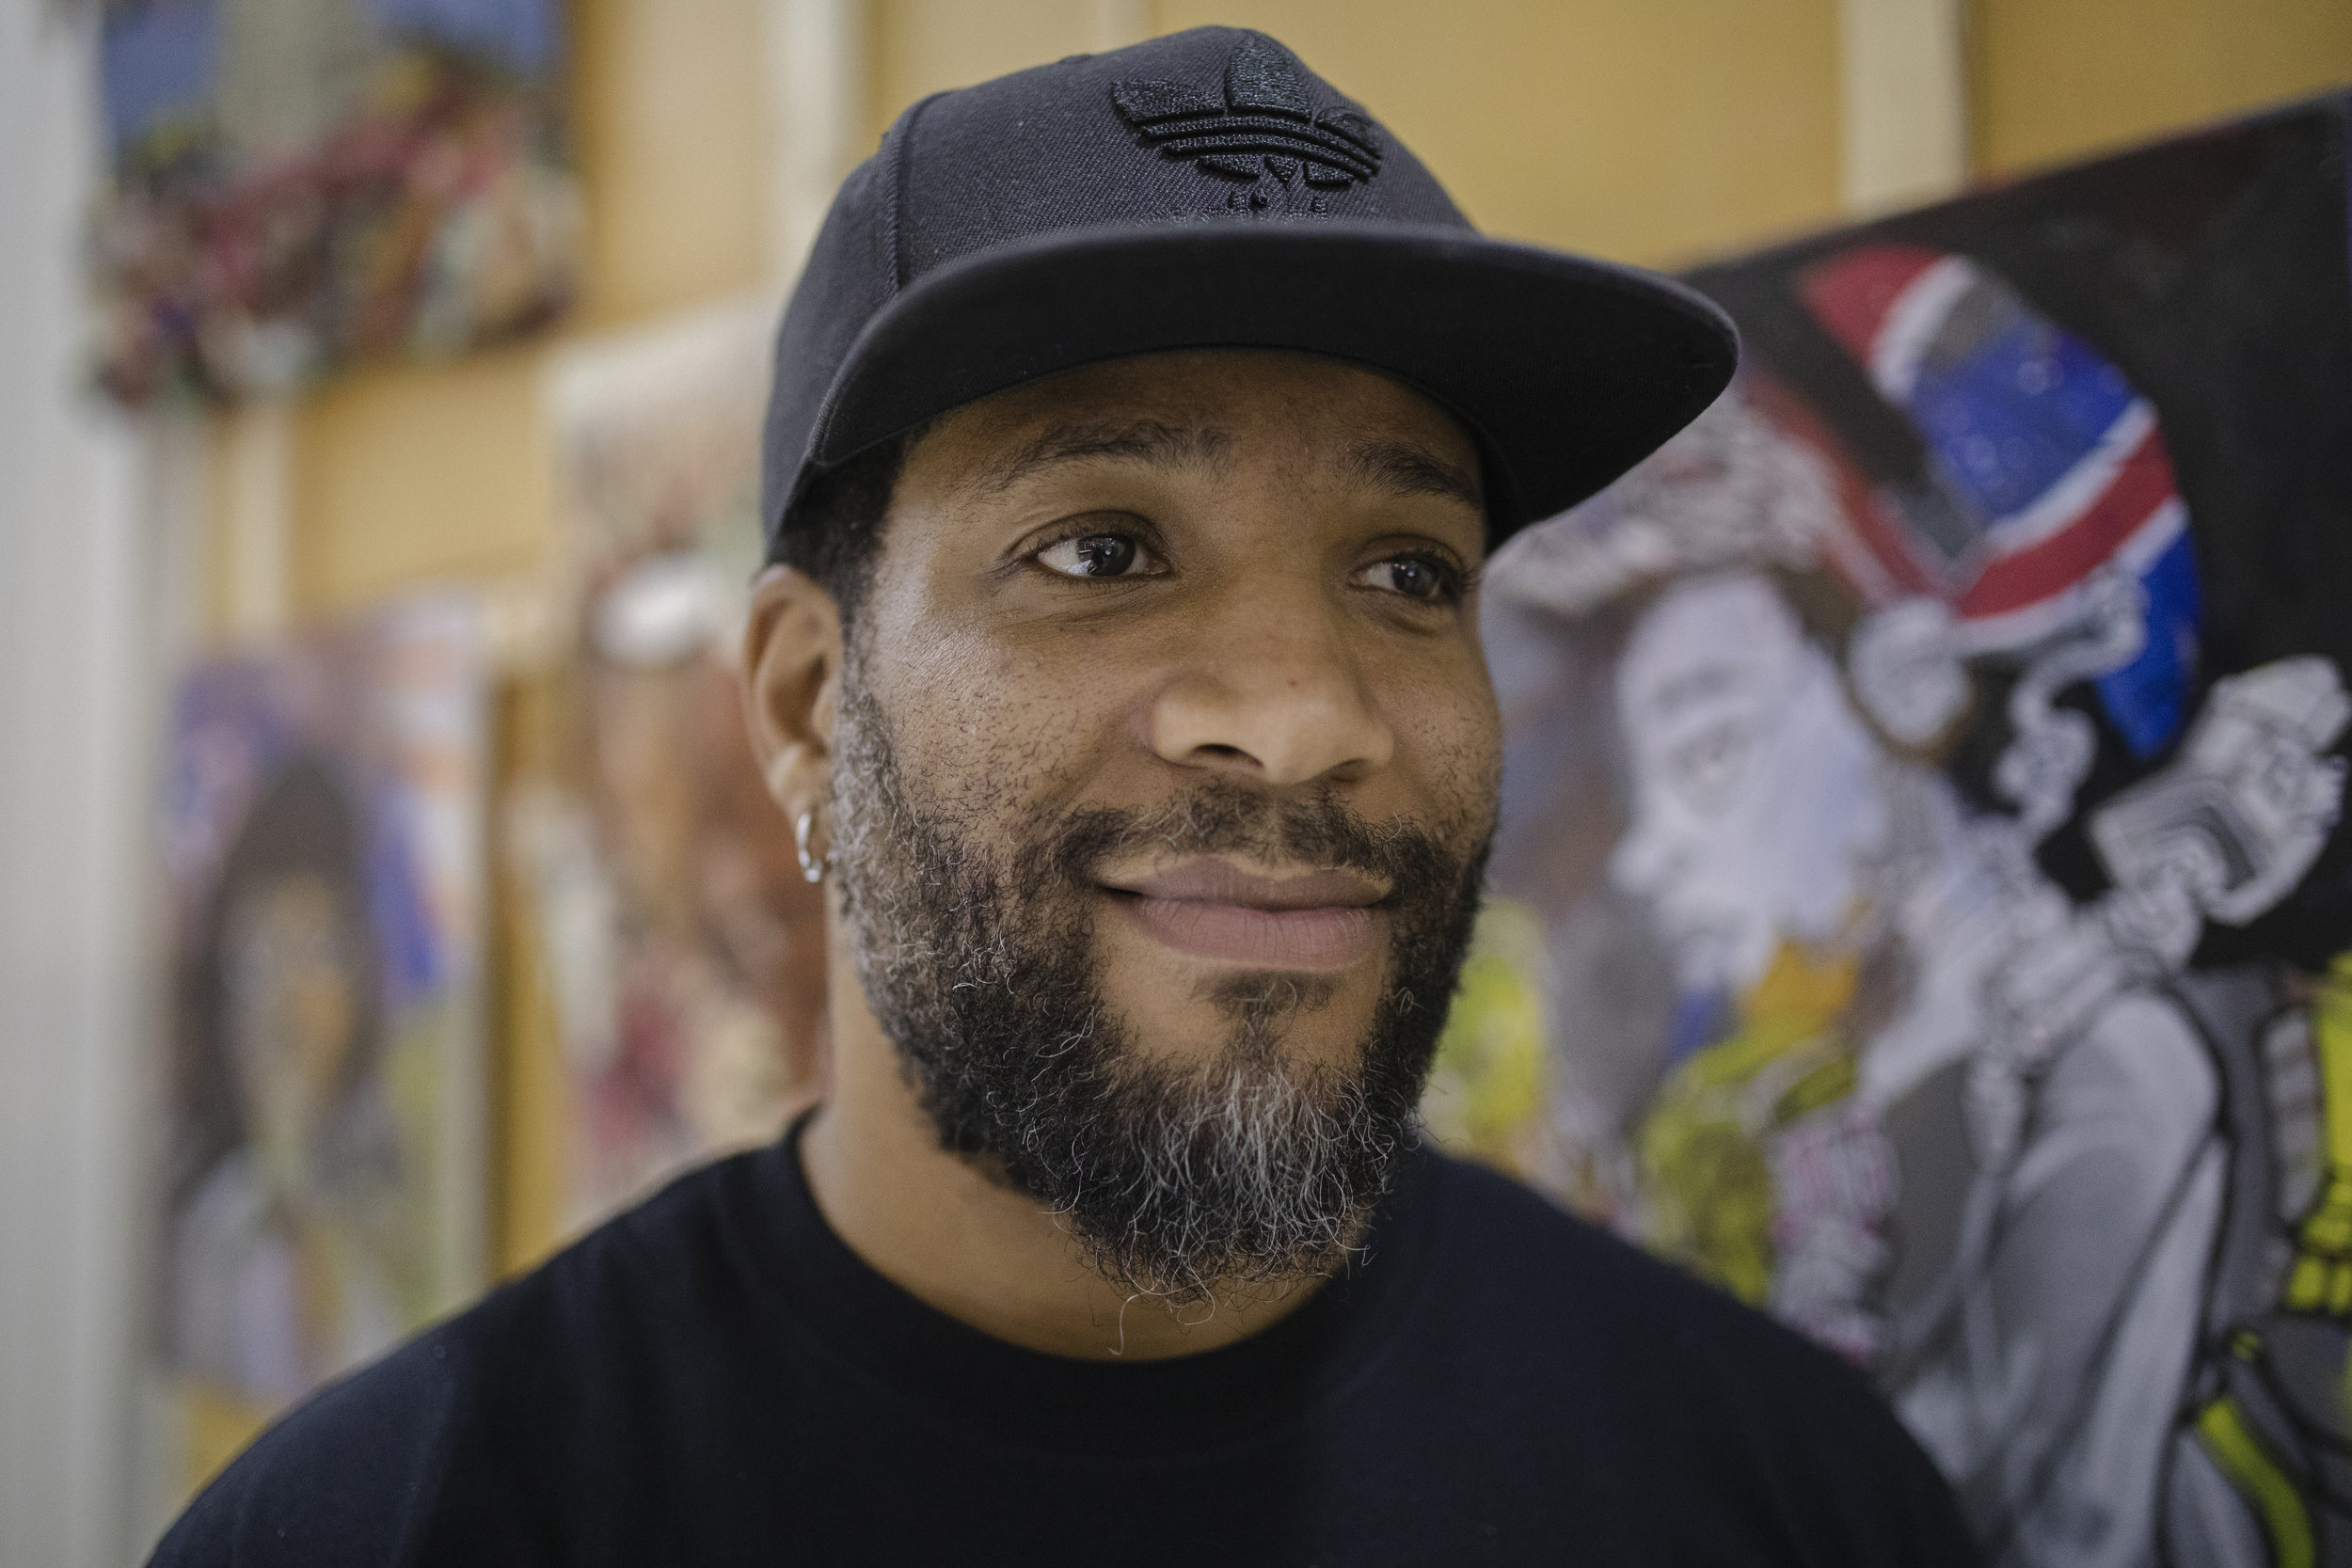 Haman Cross III is a mixed media artist who teaches at KIPP Ascend Middle School and at SAIC. Cross said he uses art to express what's in his subconscious.